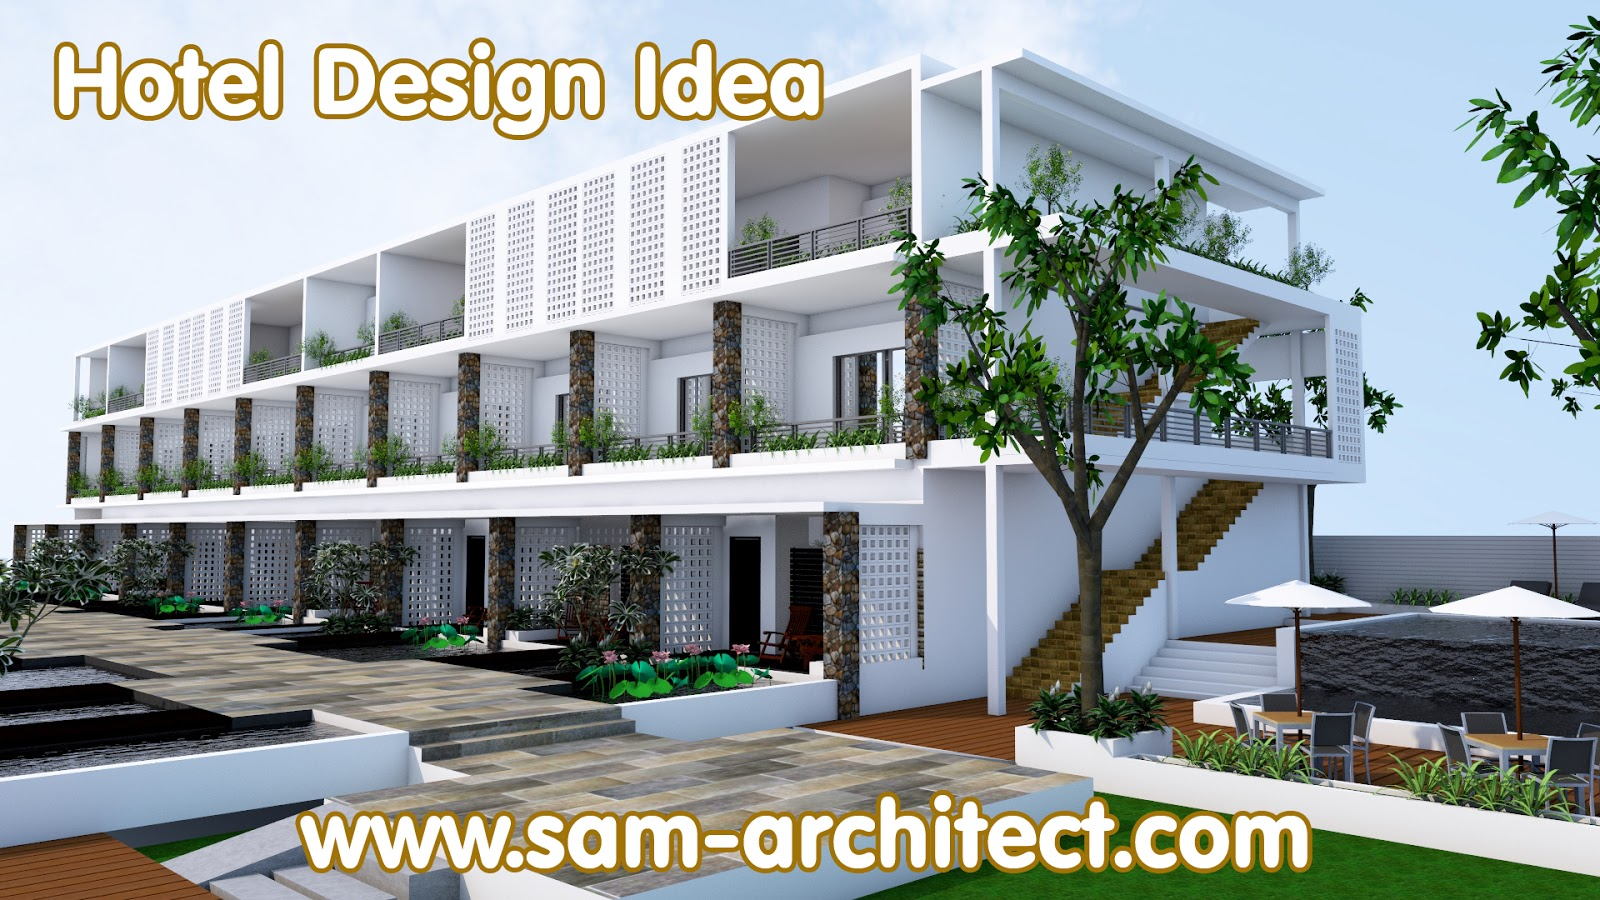 Sketchup hotel design idea samphoas 01 sam architect for Hotel ideal design